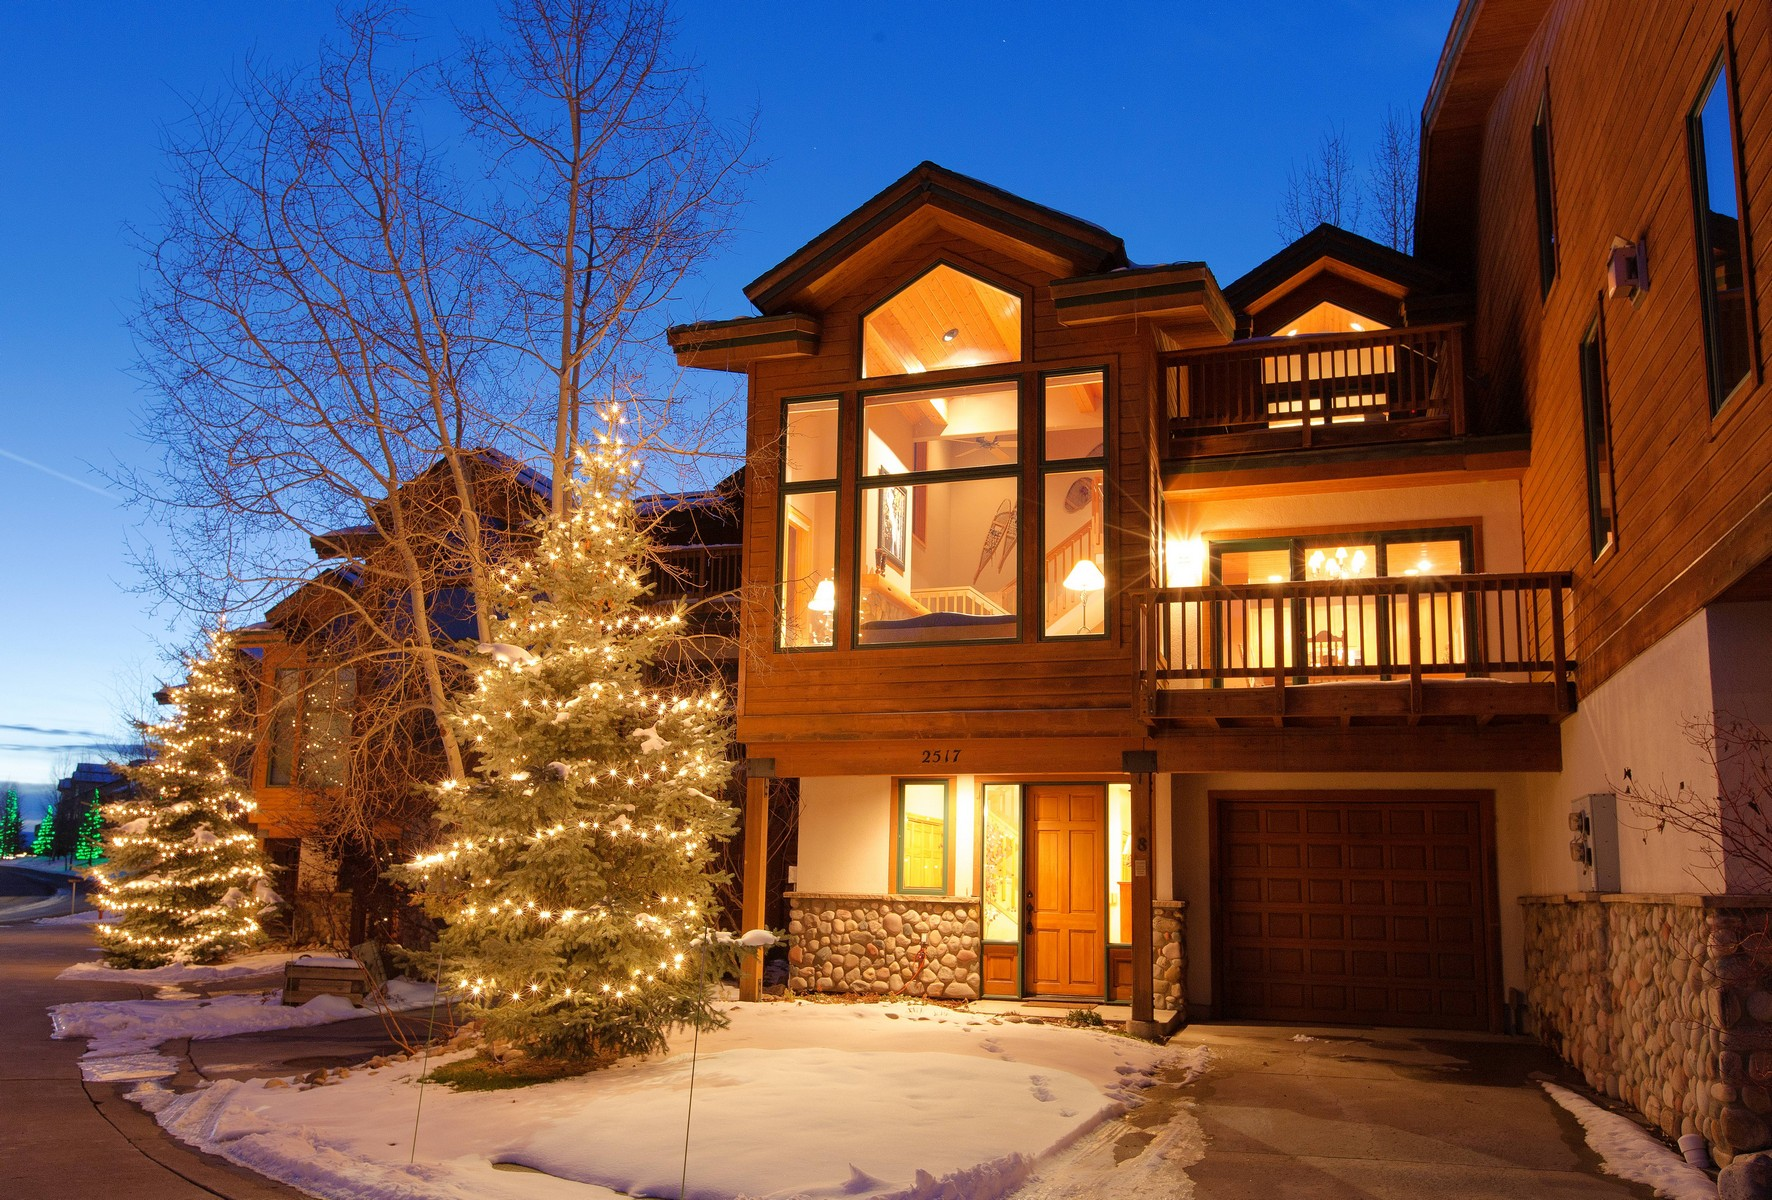 Townhouse for Sale at The Evergreens 2517 Evergreen Lane #8 Steamboat Springs, Colorado 80487 United States